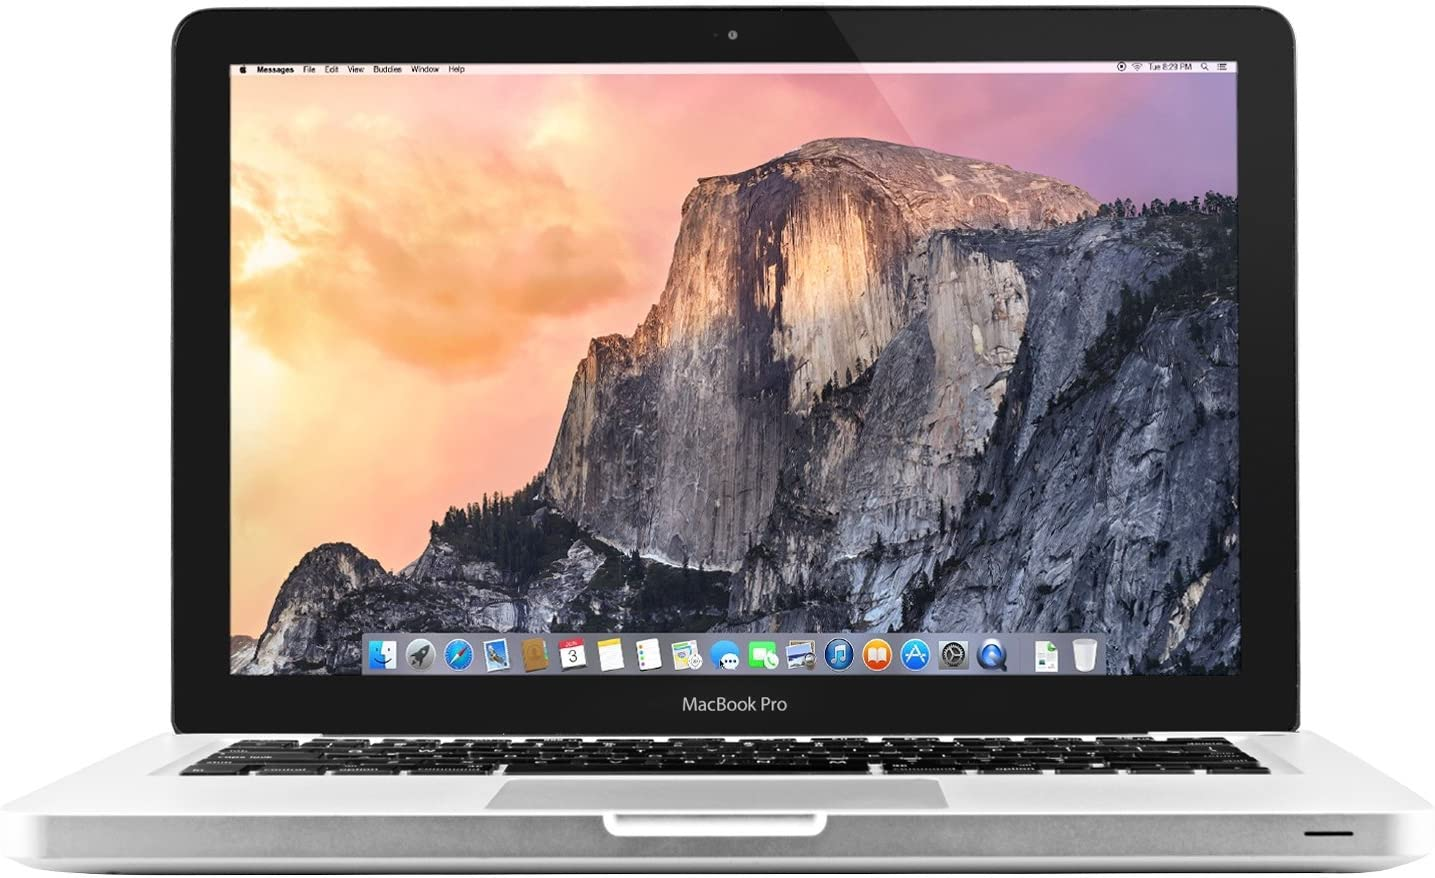 Apple MacBook Pro MD101LL/A 13.3-Inch Laptop (Core i5 4GB 500GB with Built-in DVD SuperDrive) (Renewed)